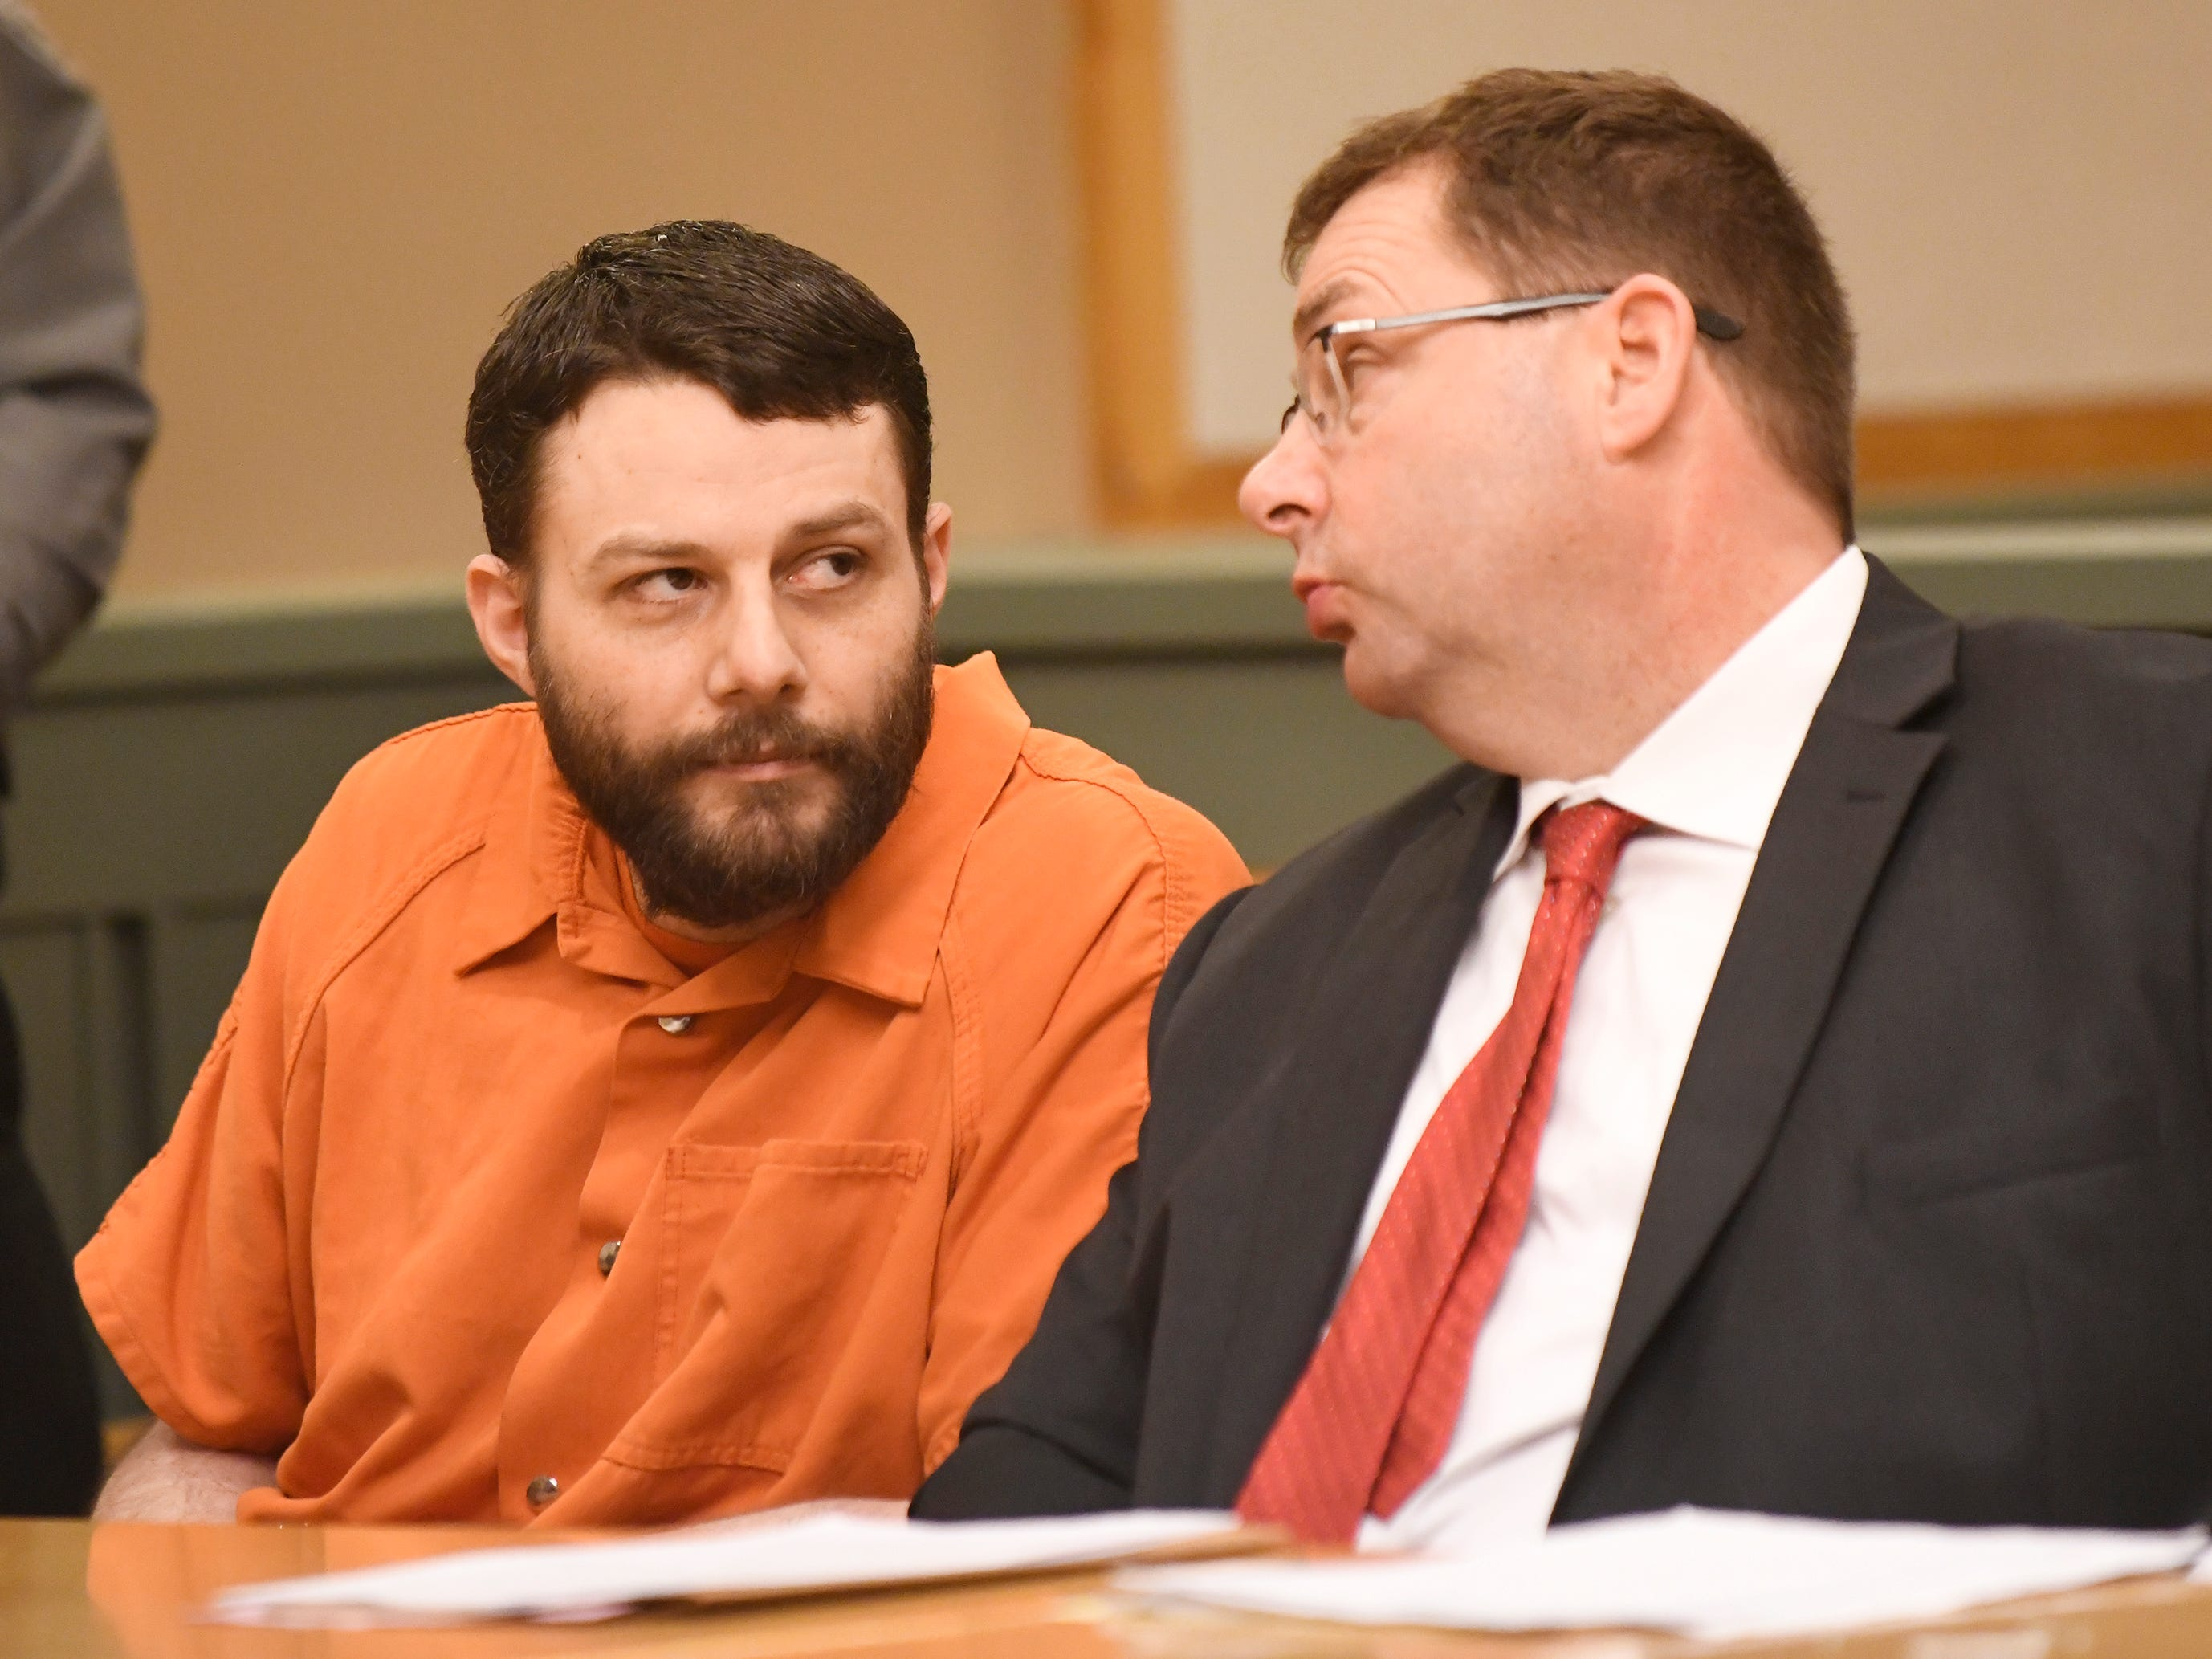 Jeremiah E. Monell, left, speaks with his defense attorney Nathan Perry in Cumberland County Superior Court on Friday, Mar. 15, 2019. Monell was sentenced to life in prison in the 2016 murder of his estranged wife, Tara O'Shea-Watson.